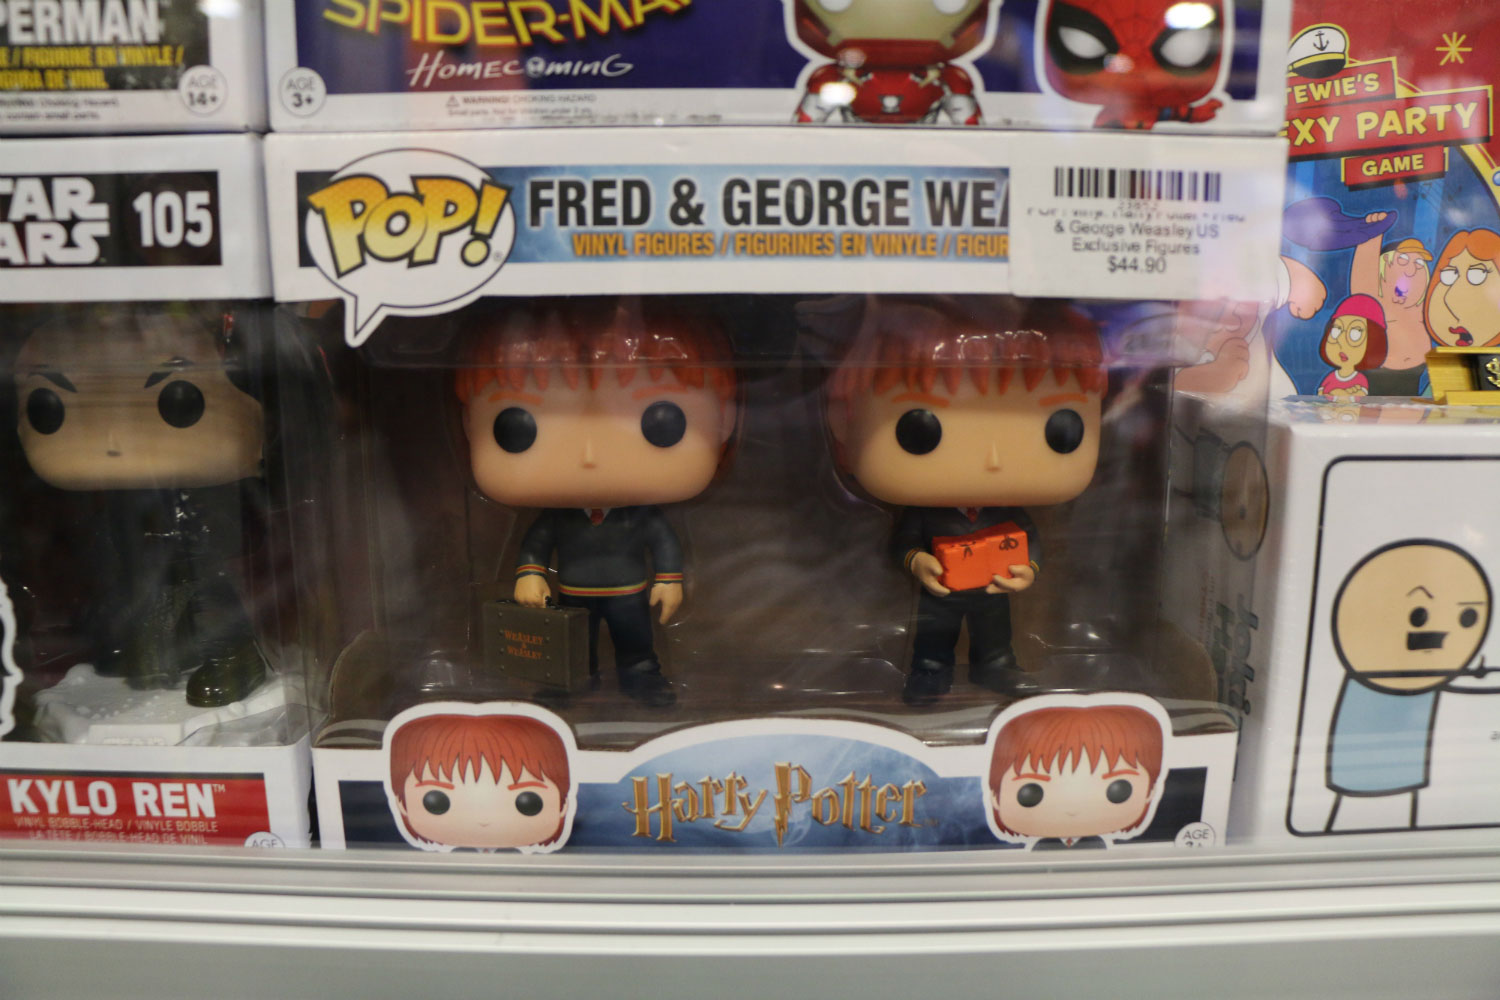 Armageddon Expo 2017 – Auckland – Harry Potter Merchandise – 4 (Photo credit: Tracey Wong)